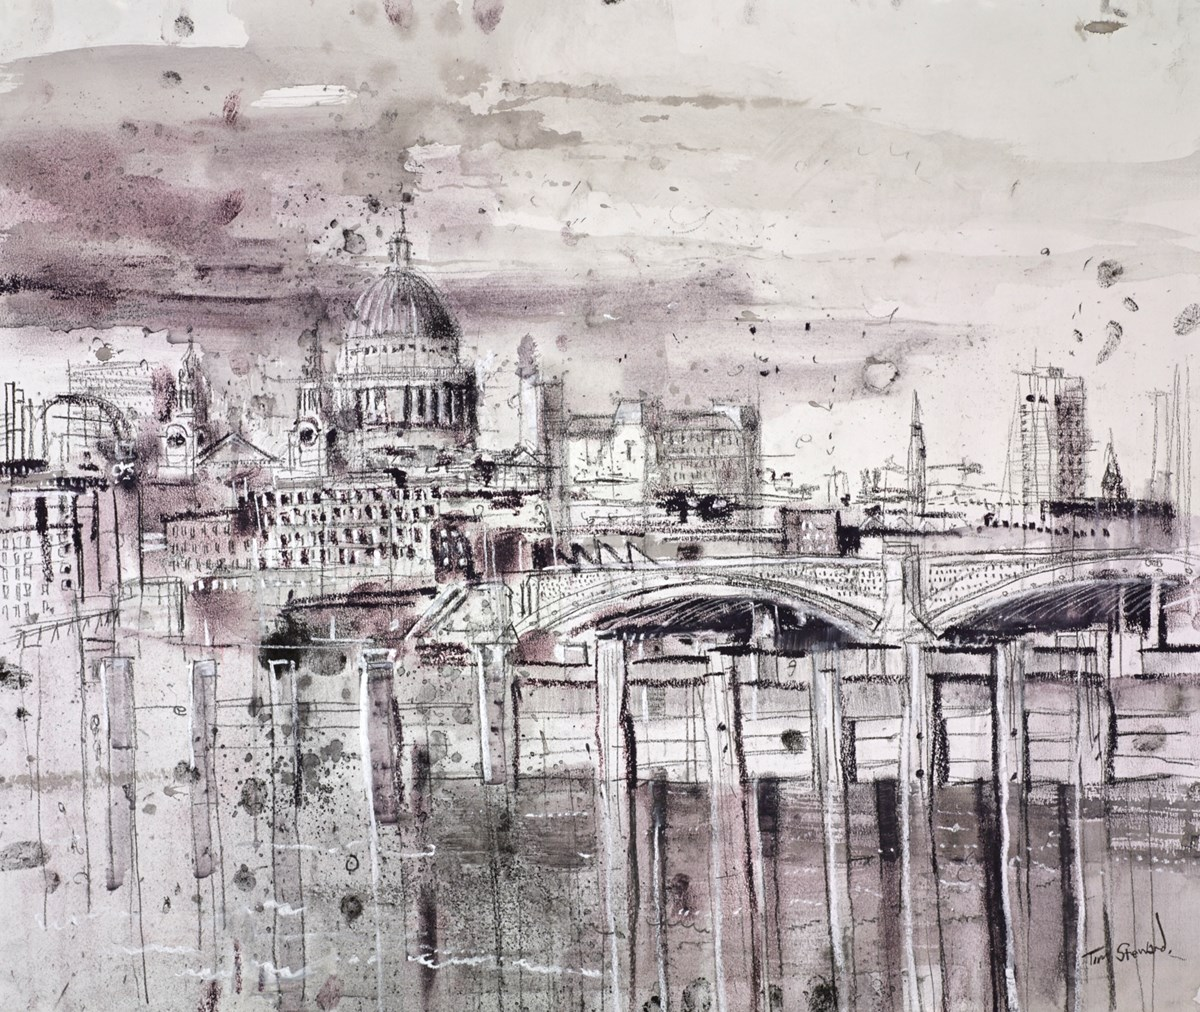 St Paul's and Blackfriars Bridge, London by tim steward -  sized 26x22 inches. Available from Whitewall Galleries